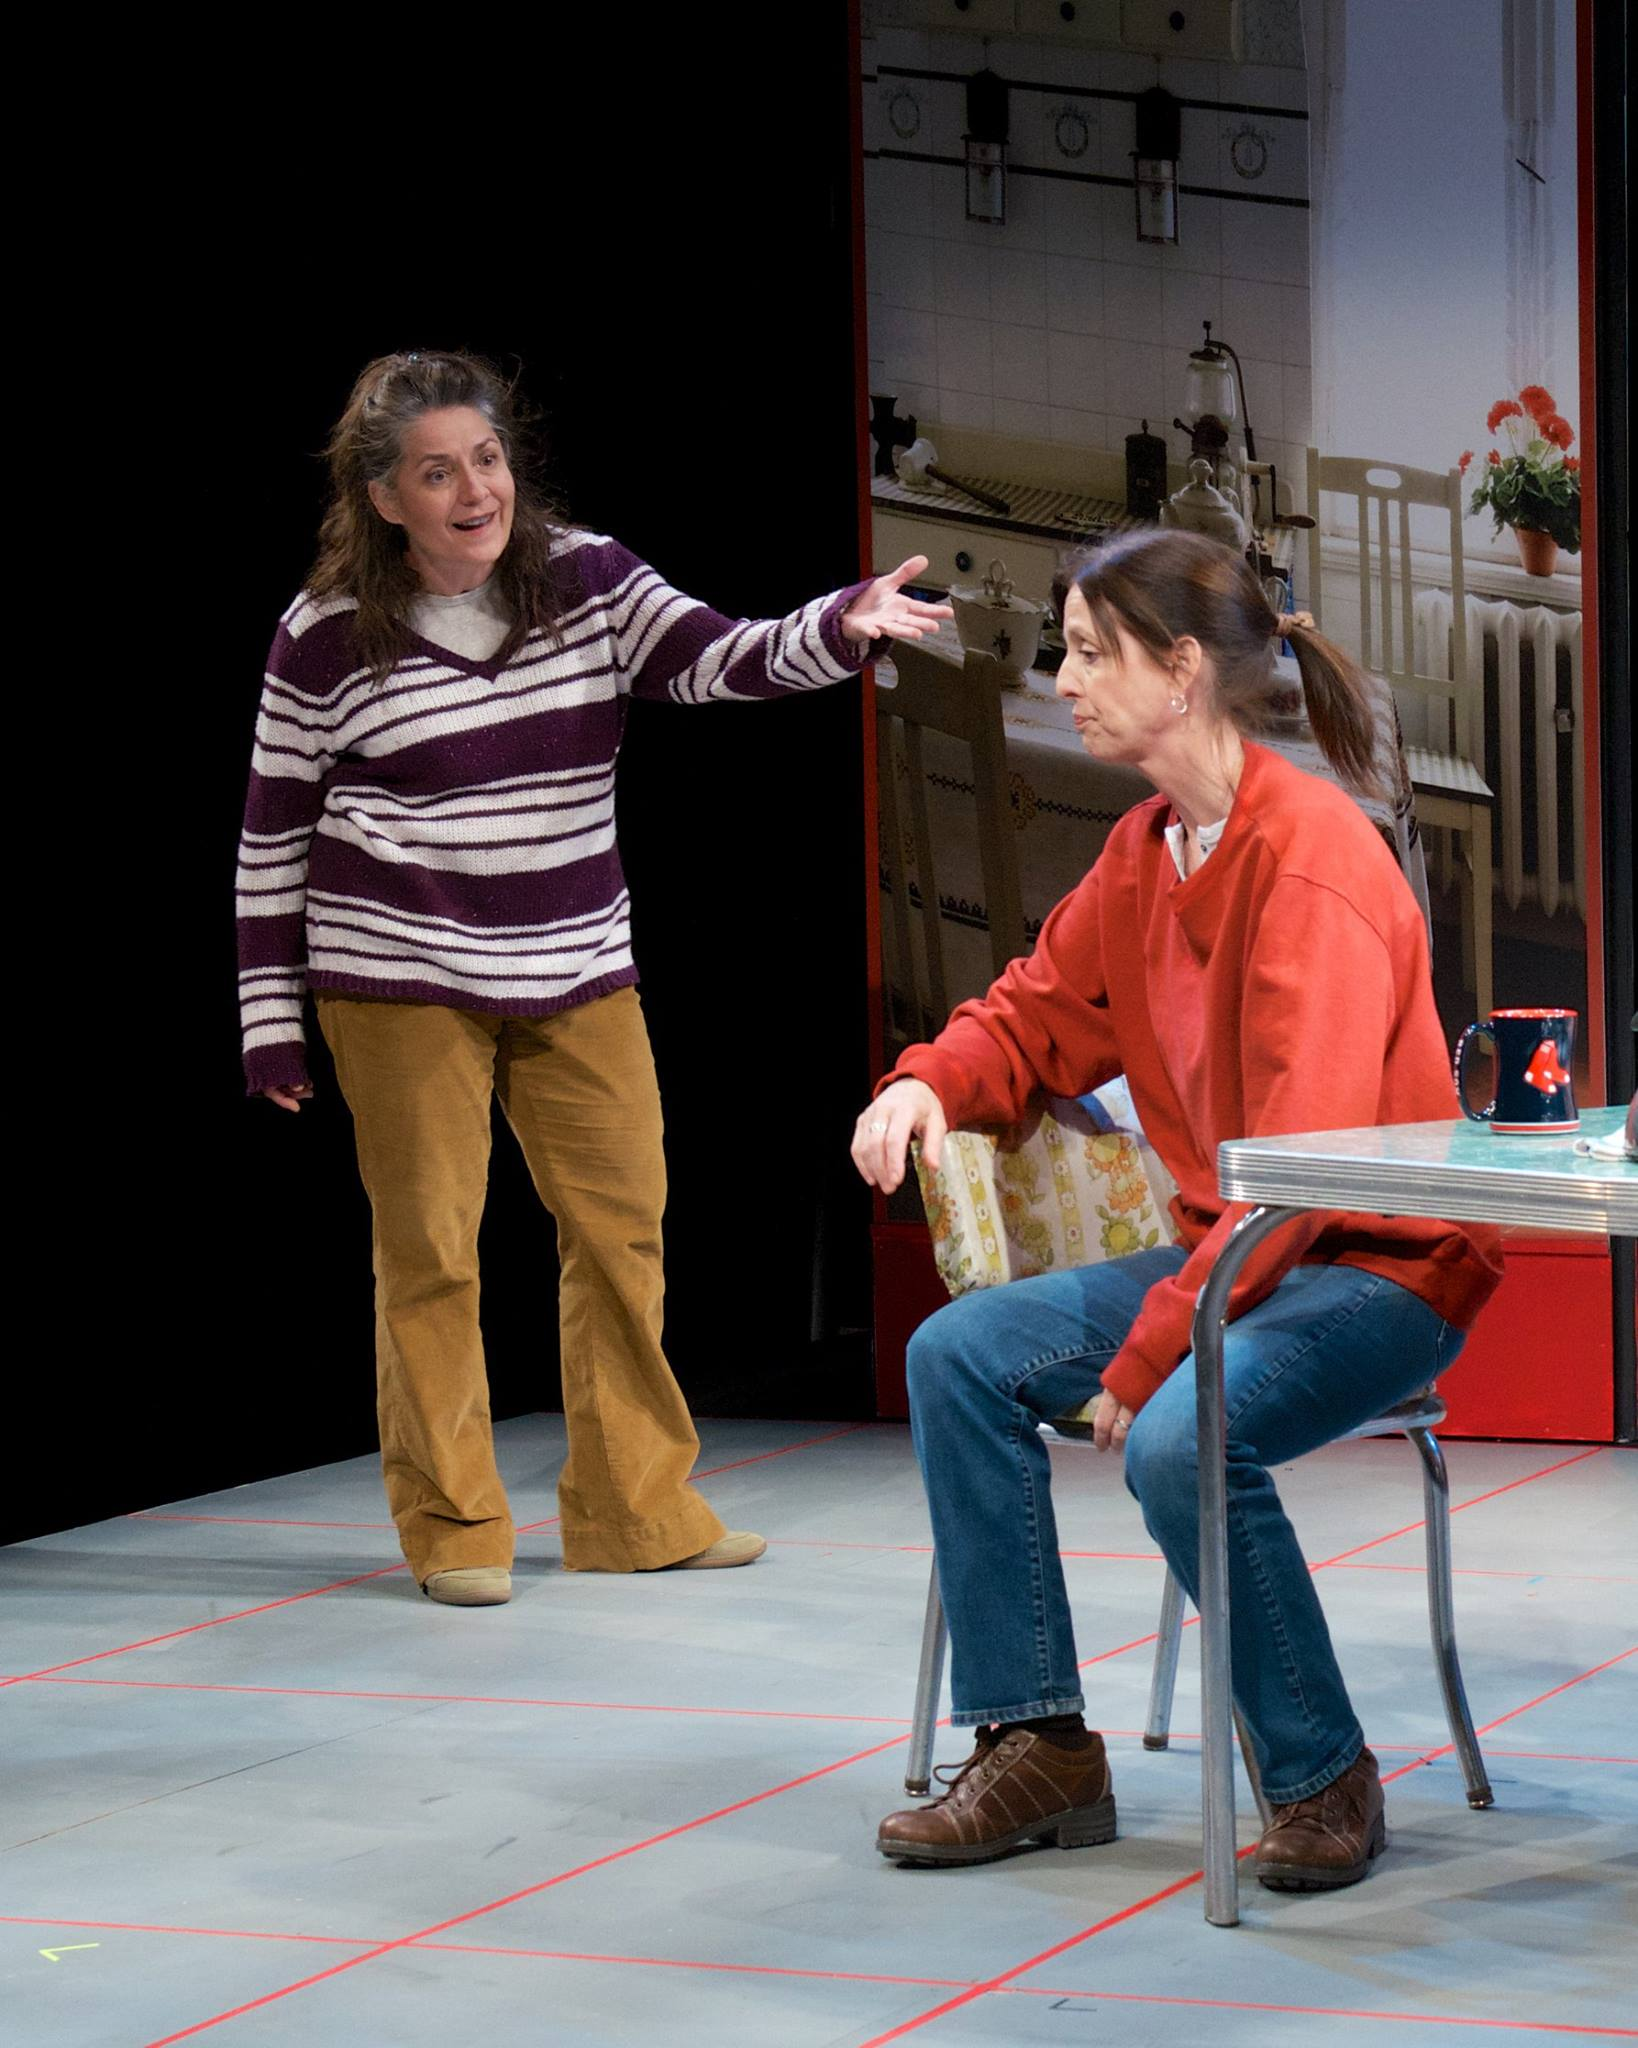 """Maria Amorocho and Katie McFadzen in """"Good People"""" at Actors Theatre May 2014. (Photo by John Groseclose)"""